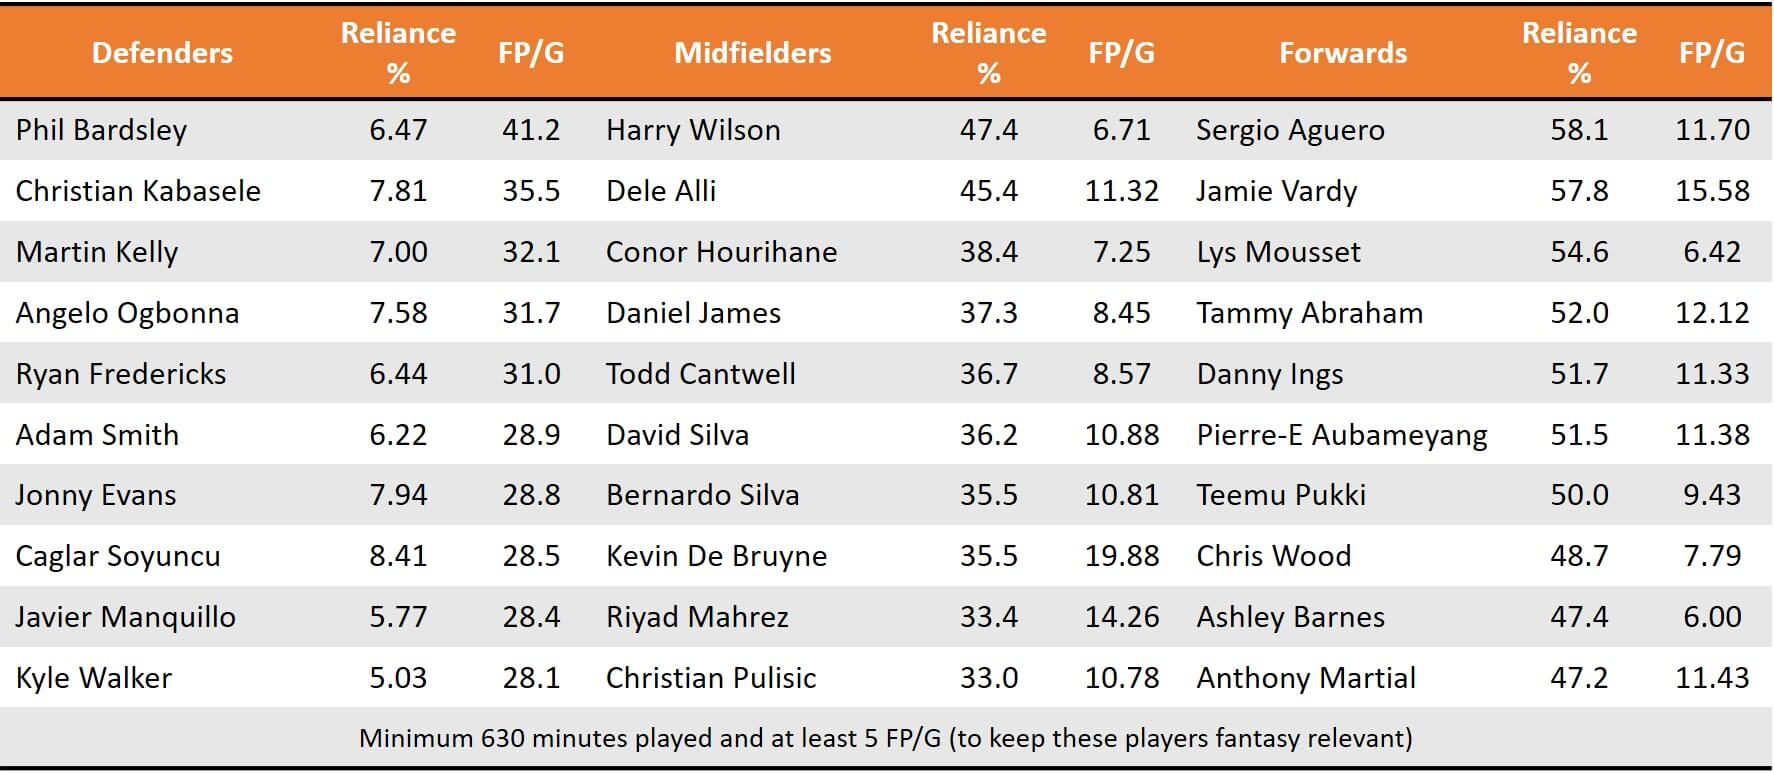 Pre GW22 High Reliance Players